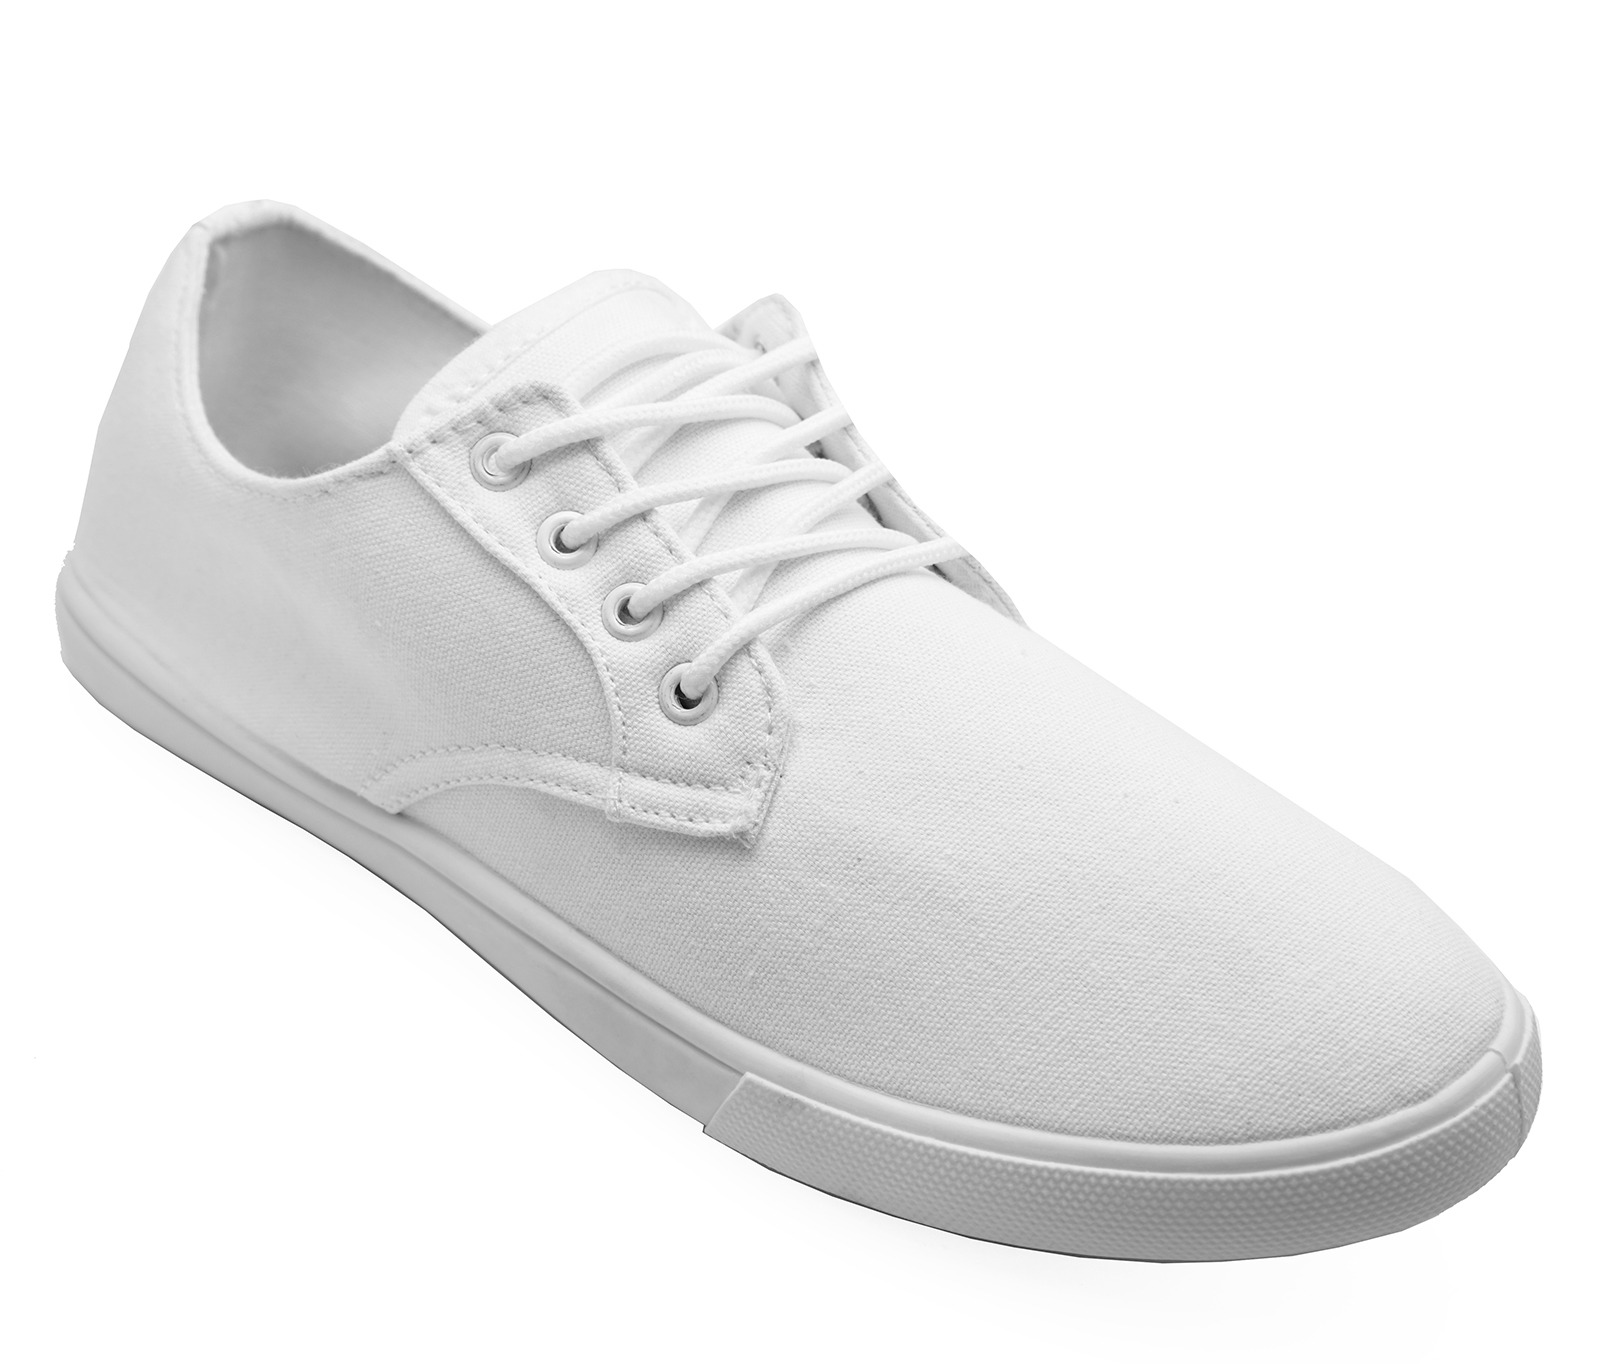 MENS-LACE-UP-WHITE-CANVAS-FLAT-TRAINER-PLIMSOLL-PUMPS-CASUAL-SHOES-SIZES-6-12 thumbnail 8